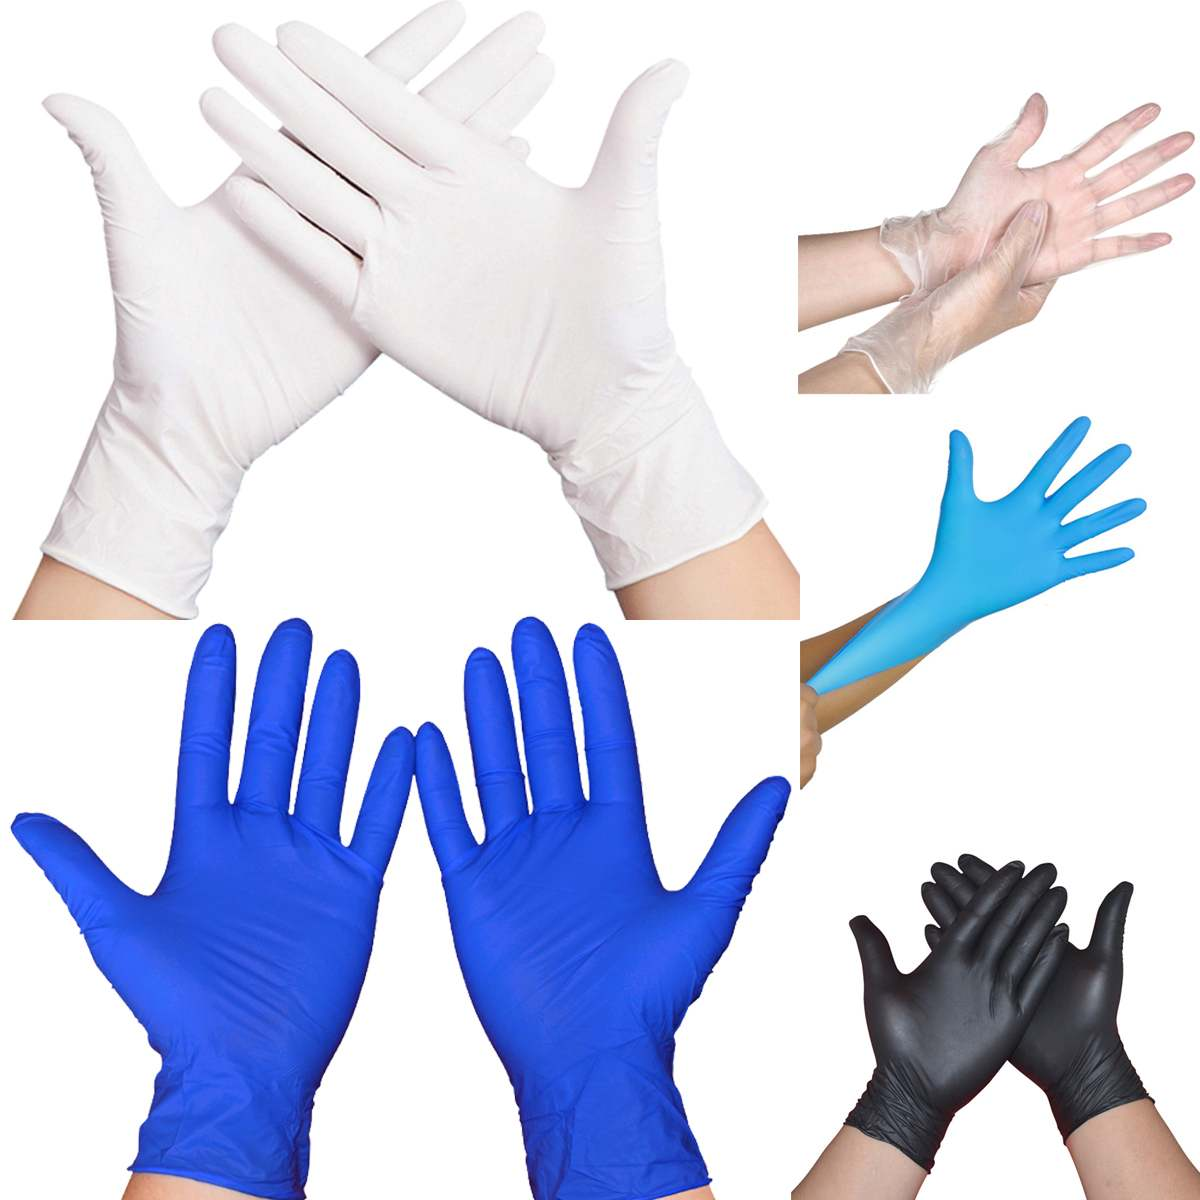 100Pcs Disposable Latex Gloves XL Safety Nitrile Gloves Non-Slip Protection Laboratory Household Cleaning Rubber Latex Gloves